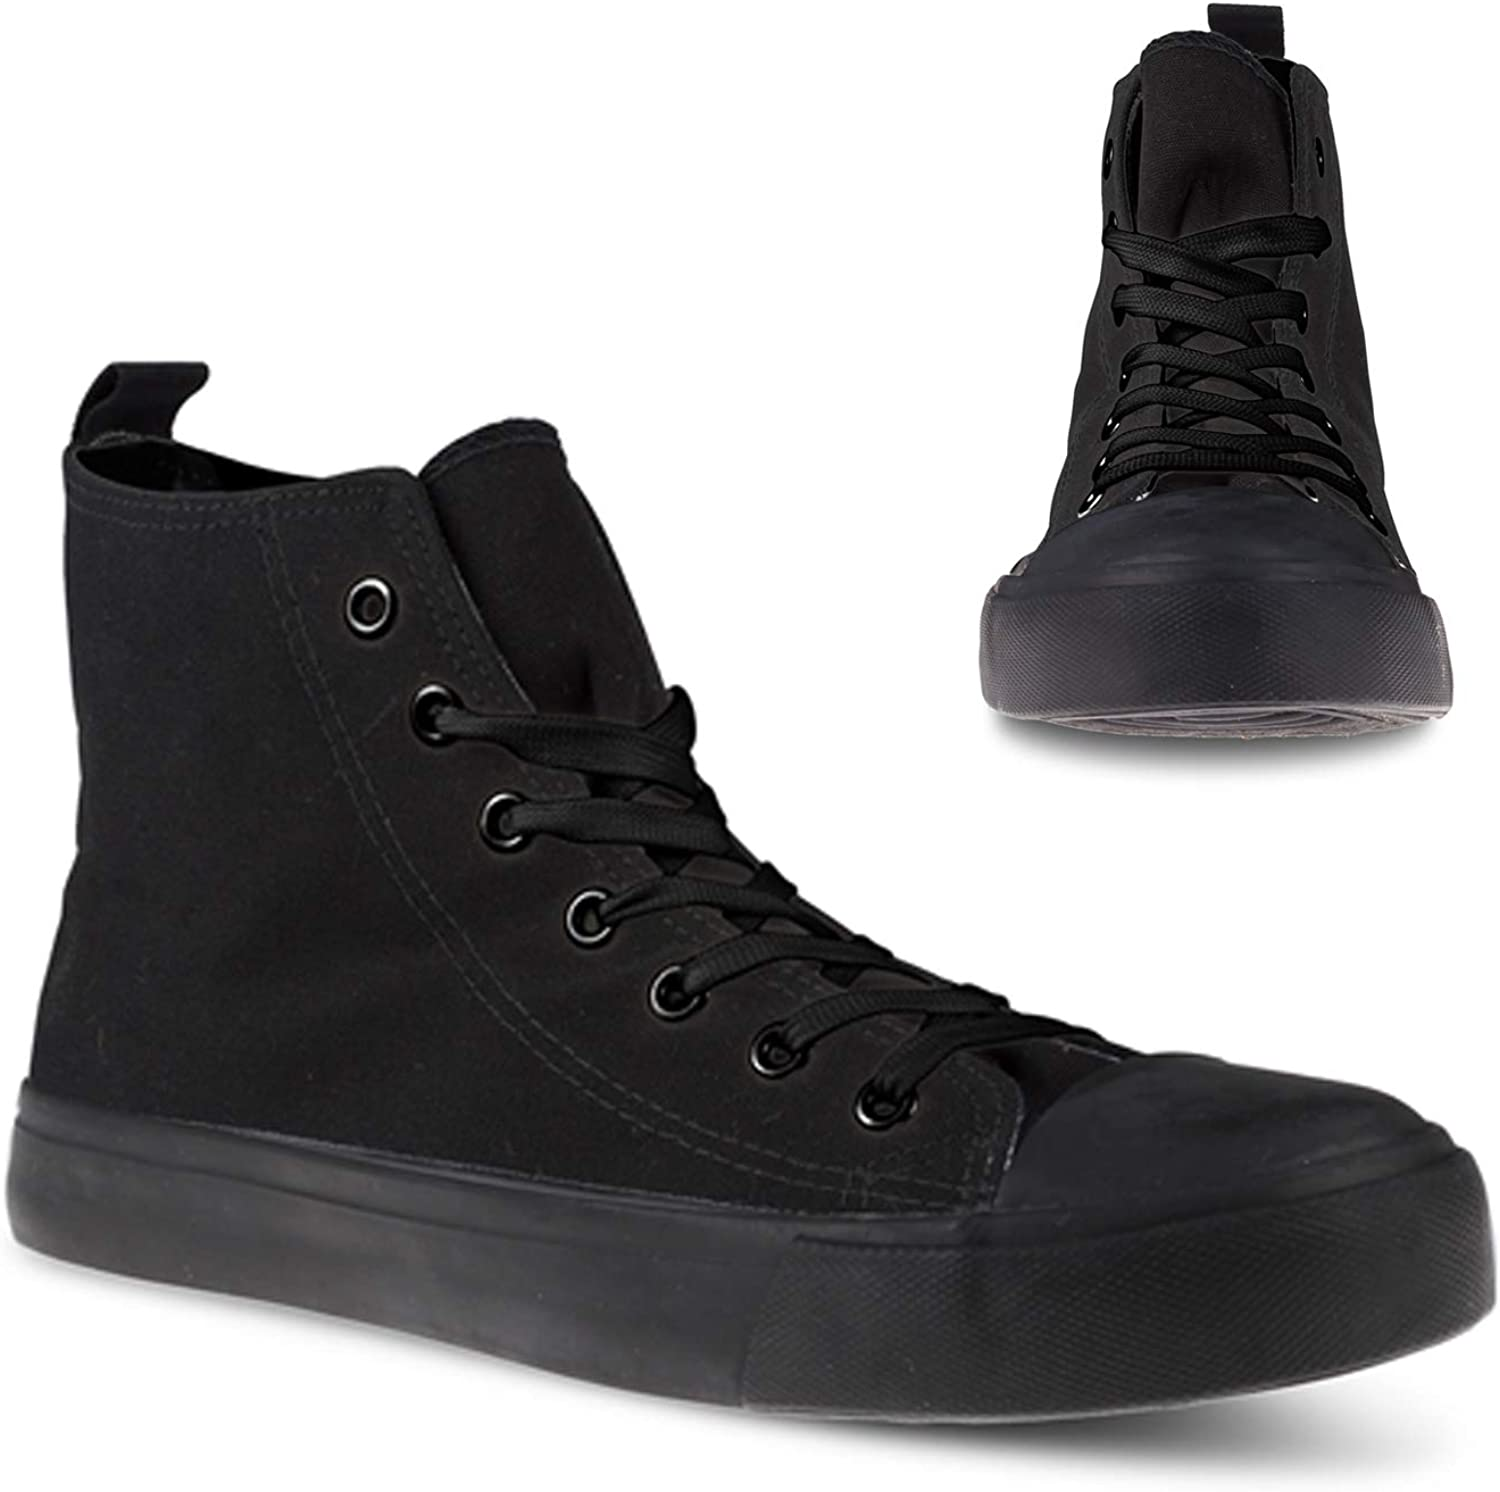 Twisted Women's KIX Hi-Top Sneaker Lace Great interest 2021new shipping free shipping Up Fashion